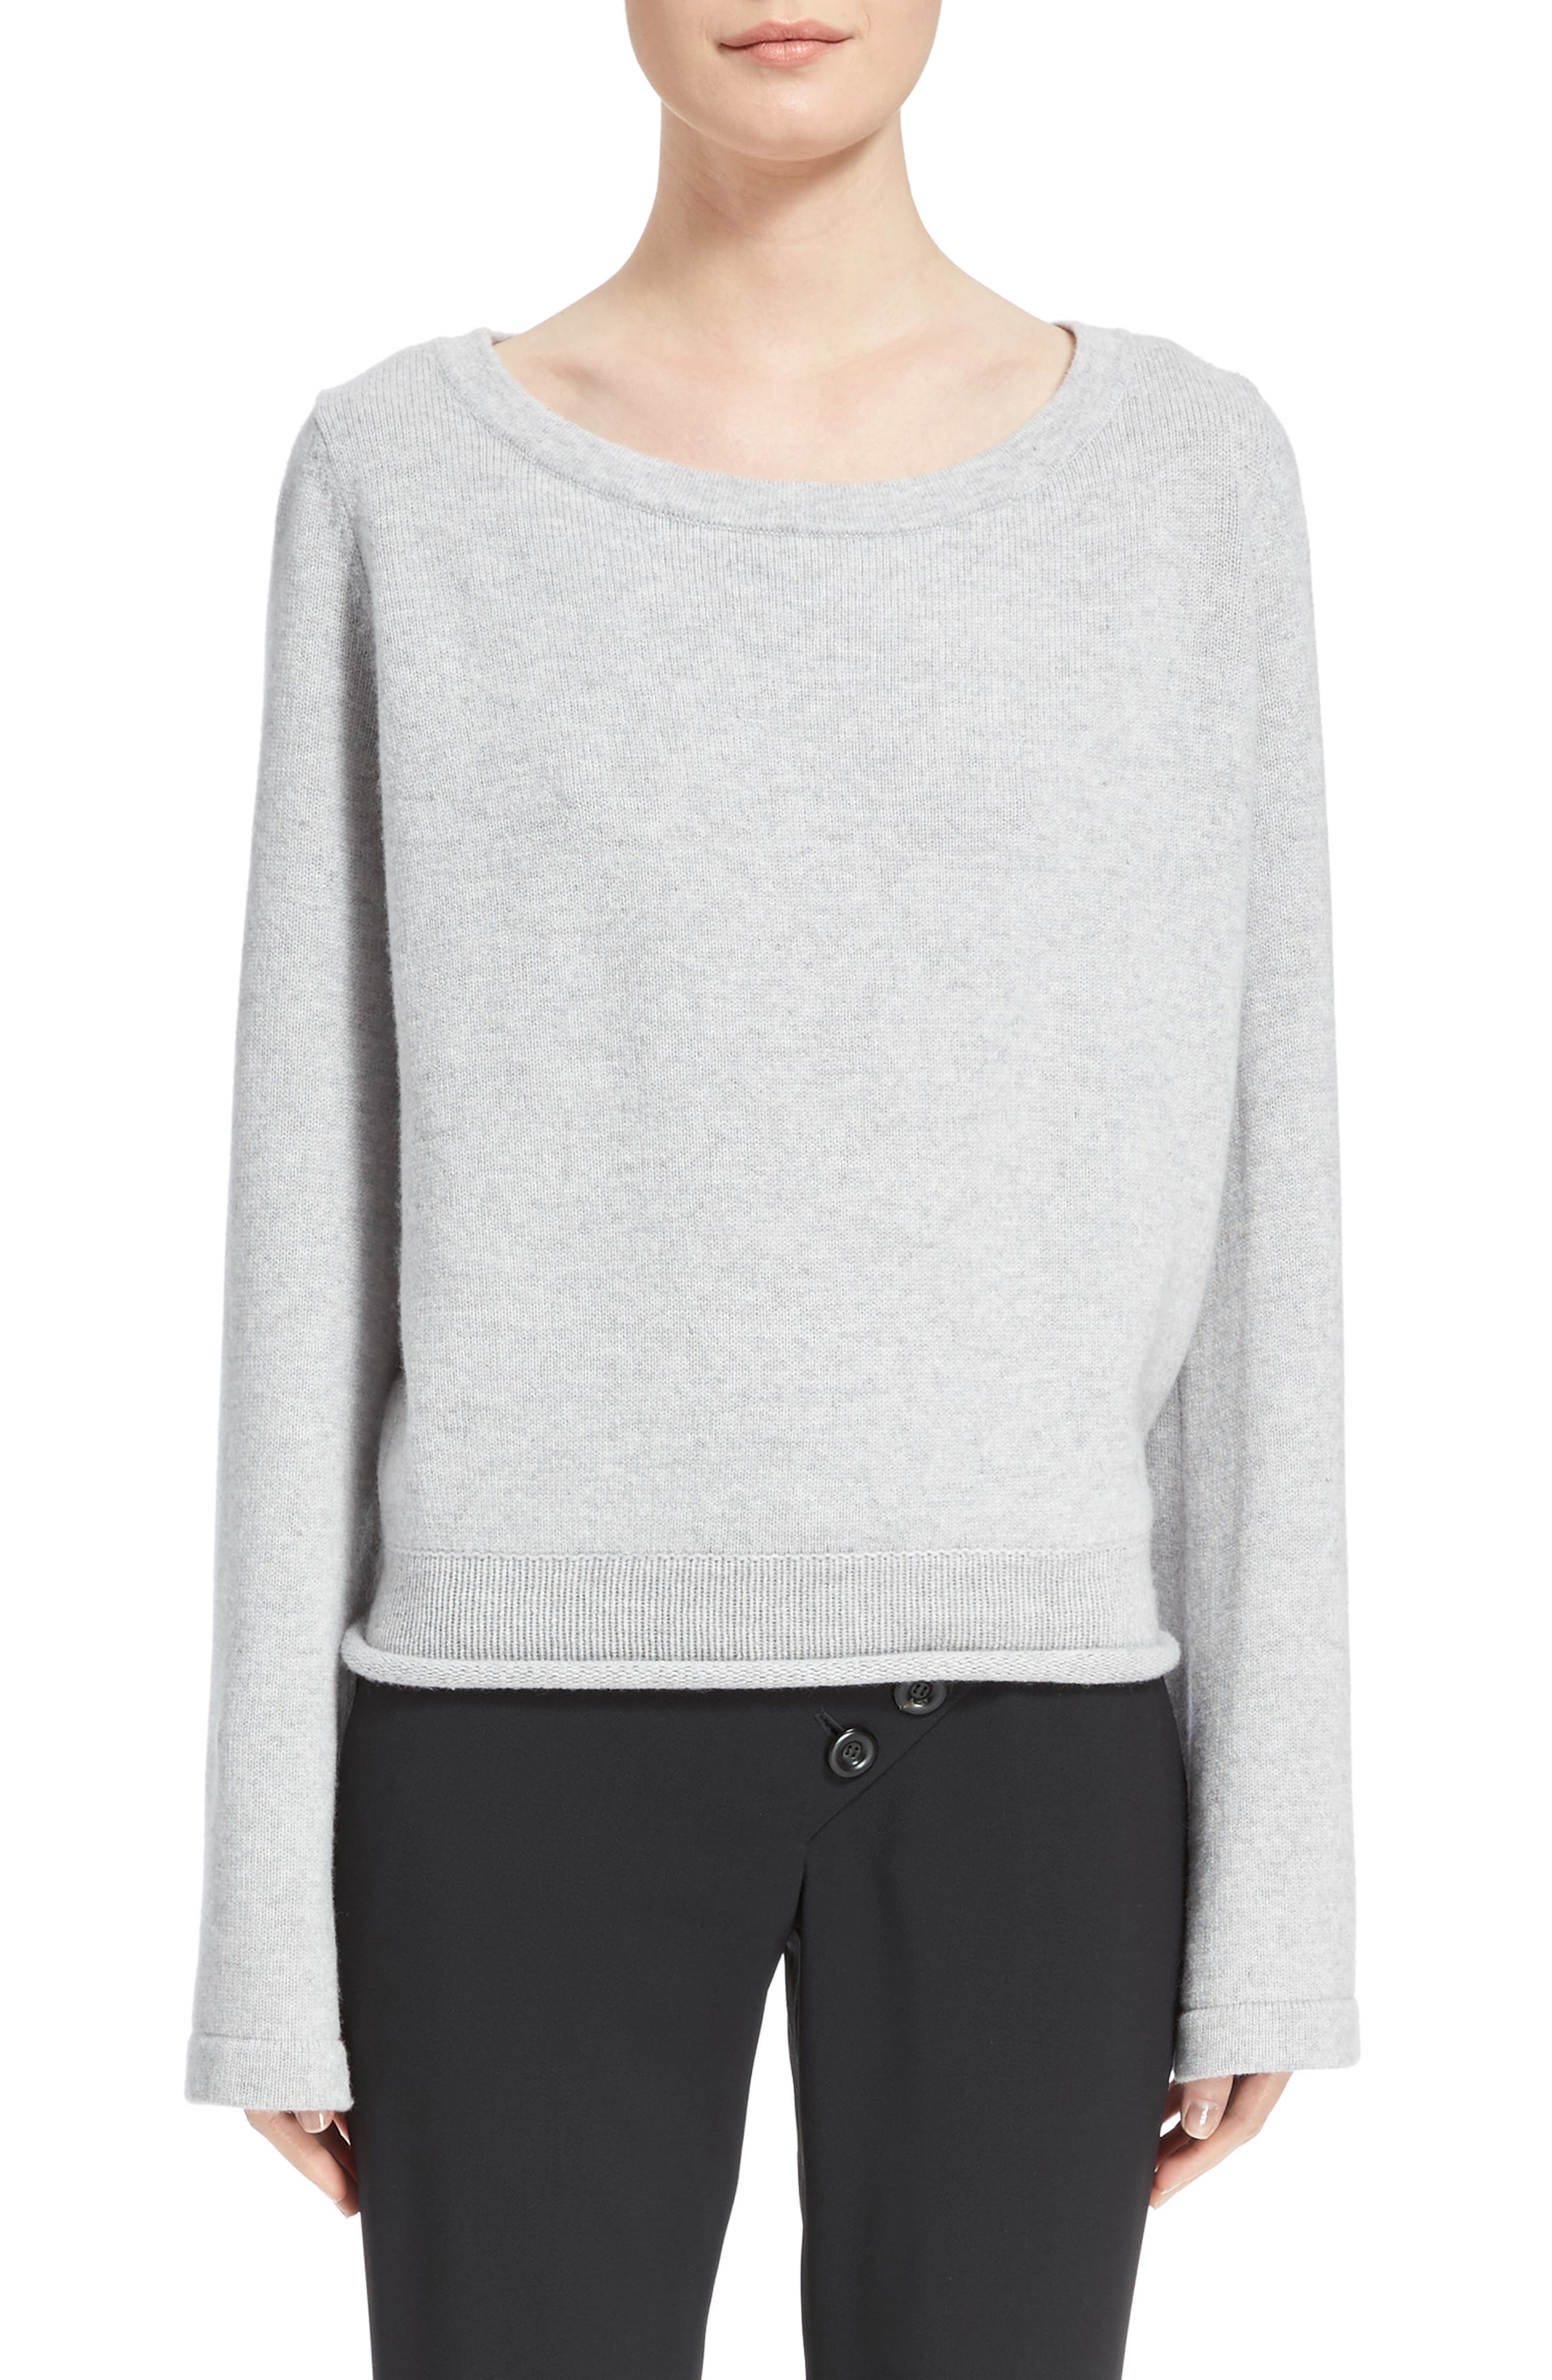 Main Image - Chloé Iconic Cashmere Sweater